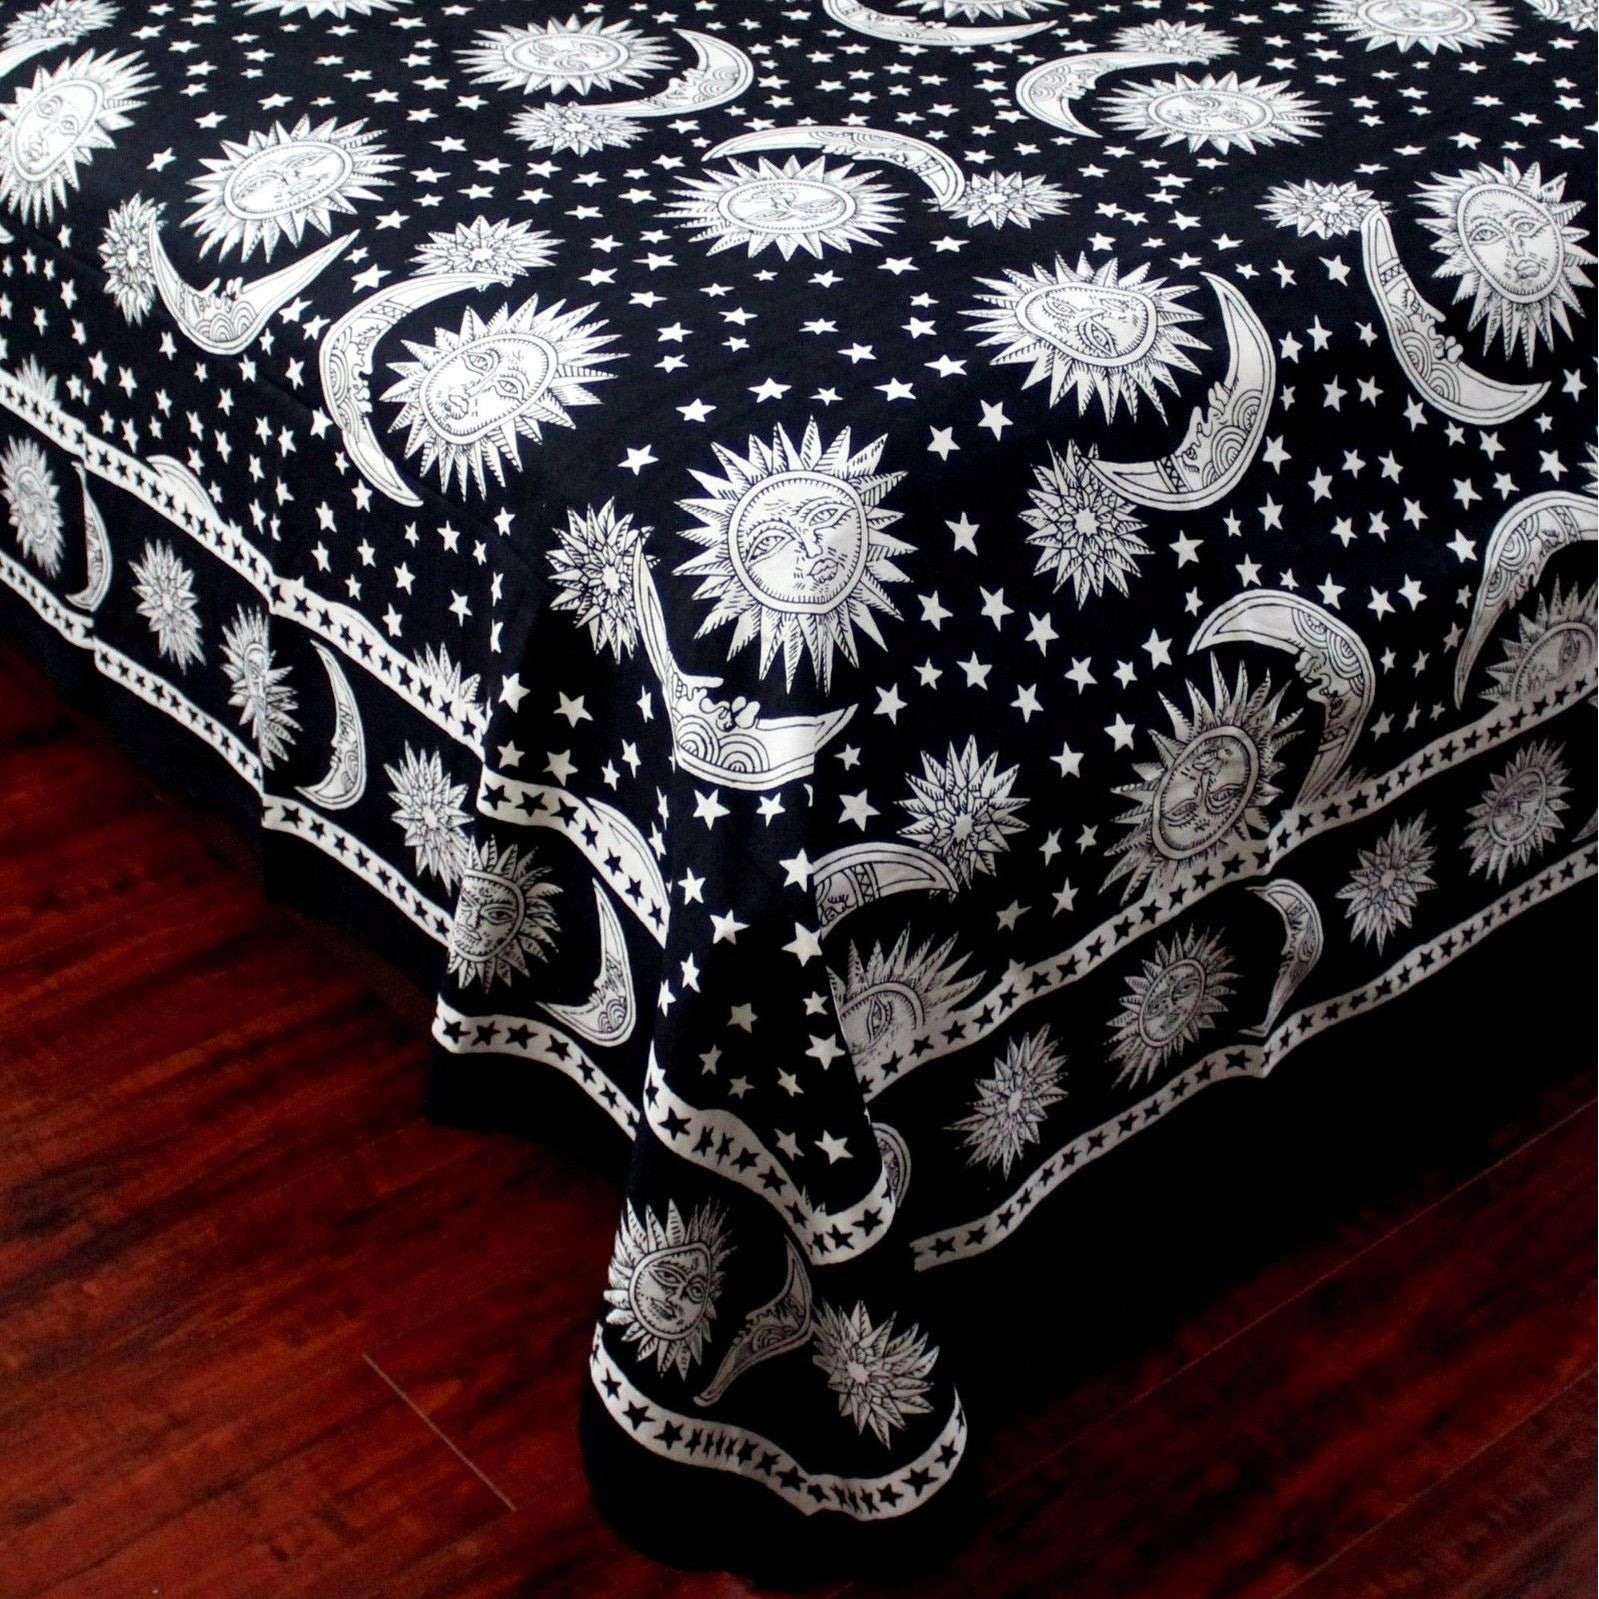 36a07345b8 Shop Cotton Celestial Sun Moon & Star Tapestry Wall Hanging Coverlet  Bedspread Beach Sheet Dorm Decor Black White Twin - Free Shipping On Orders  Over $45 ...